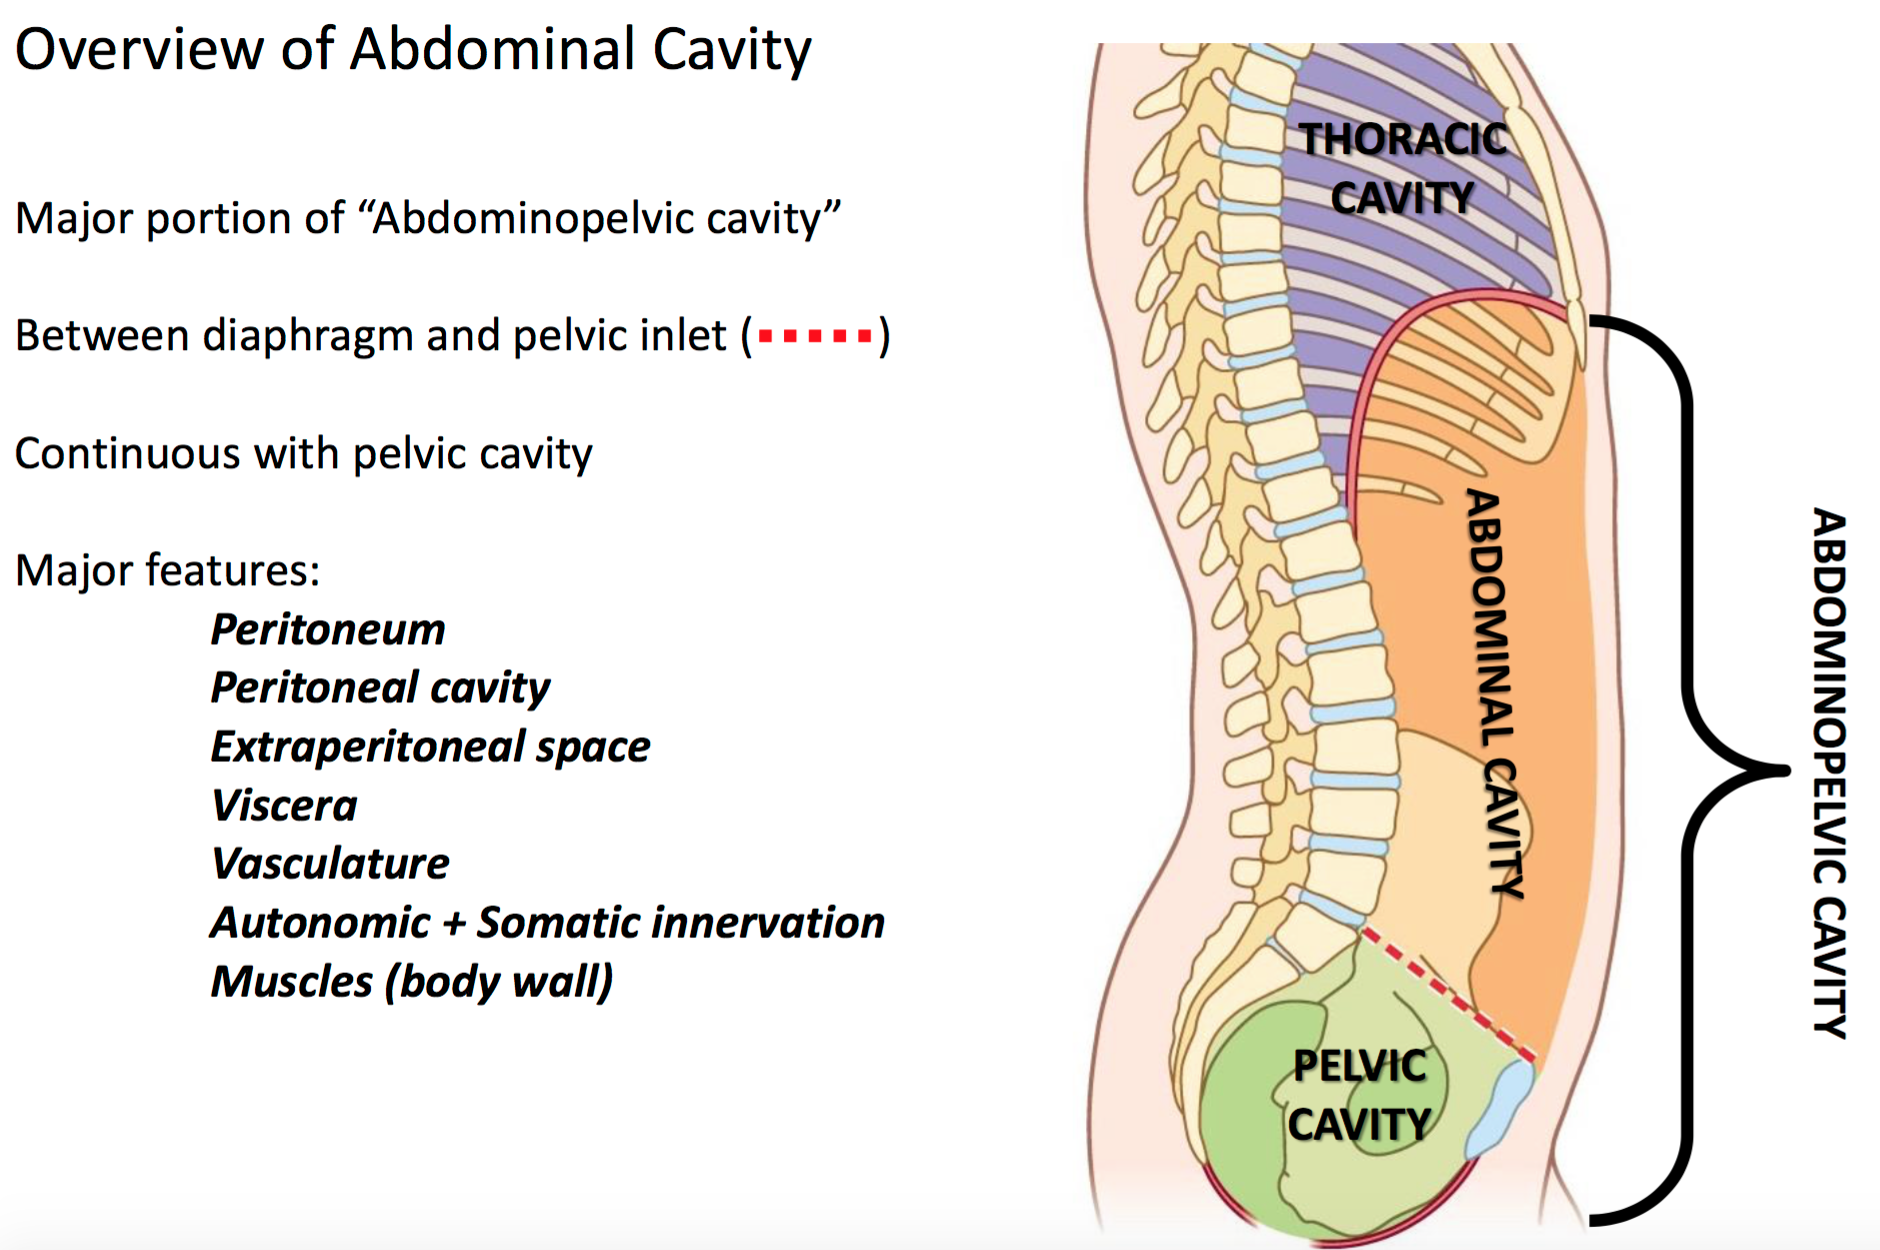 What is the abdominal cavity